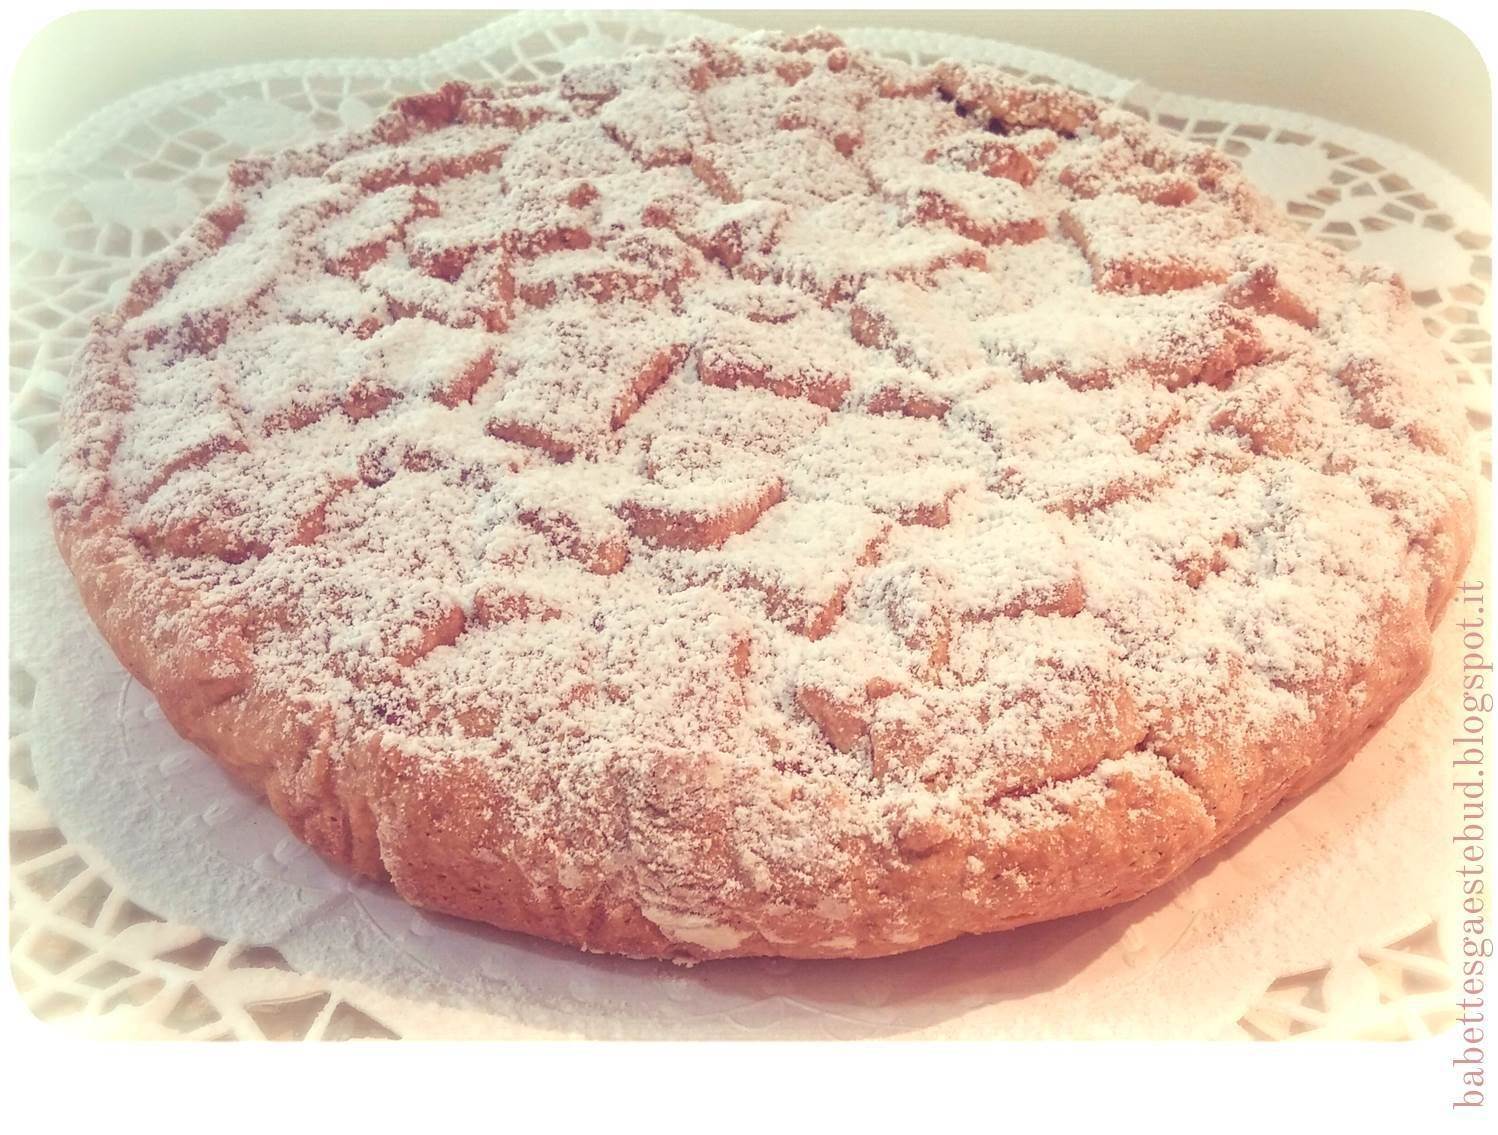 Babettes gæstebud.: Sweetened ricotta, amaretto biscuits and chocolate...